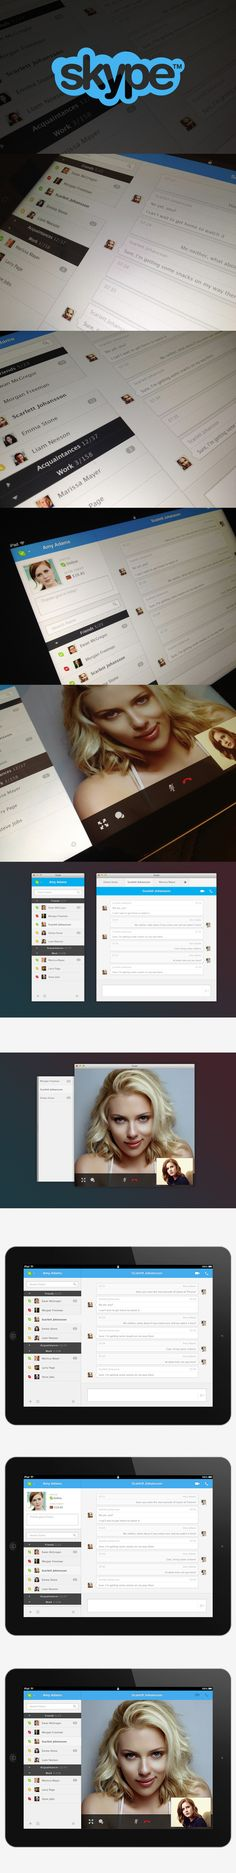 """SKYPE UI by Leonardo Zakour, via Behance *** """" This is a concept of the Skype application for iPad and MacOS (Applicable for Win too). The main idea was to work over different user interface elements to enhance the overall usability and user experience. """""""